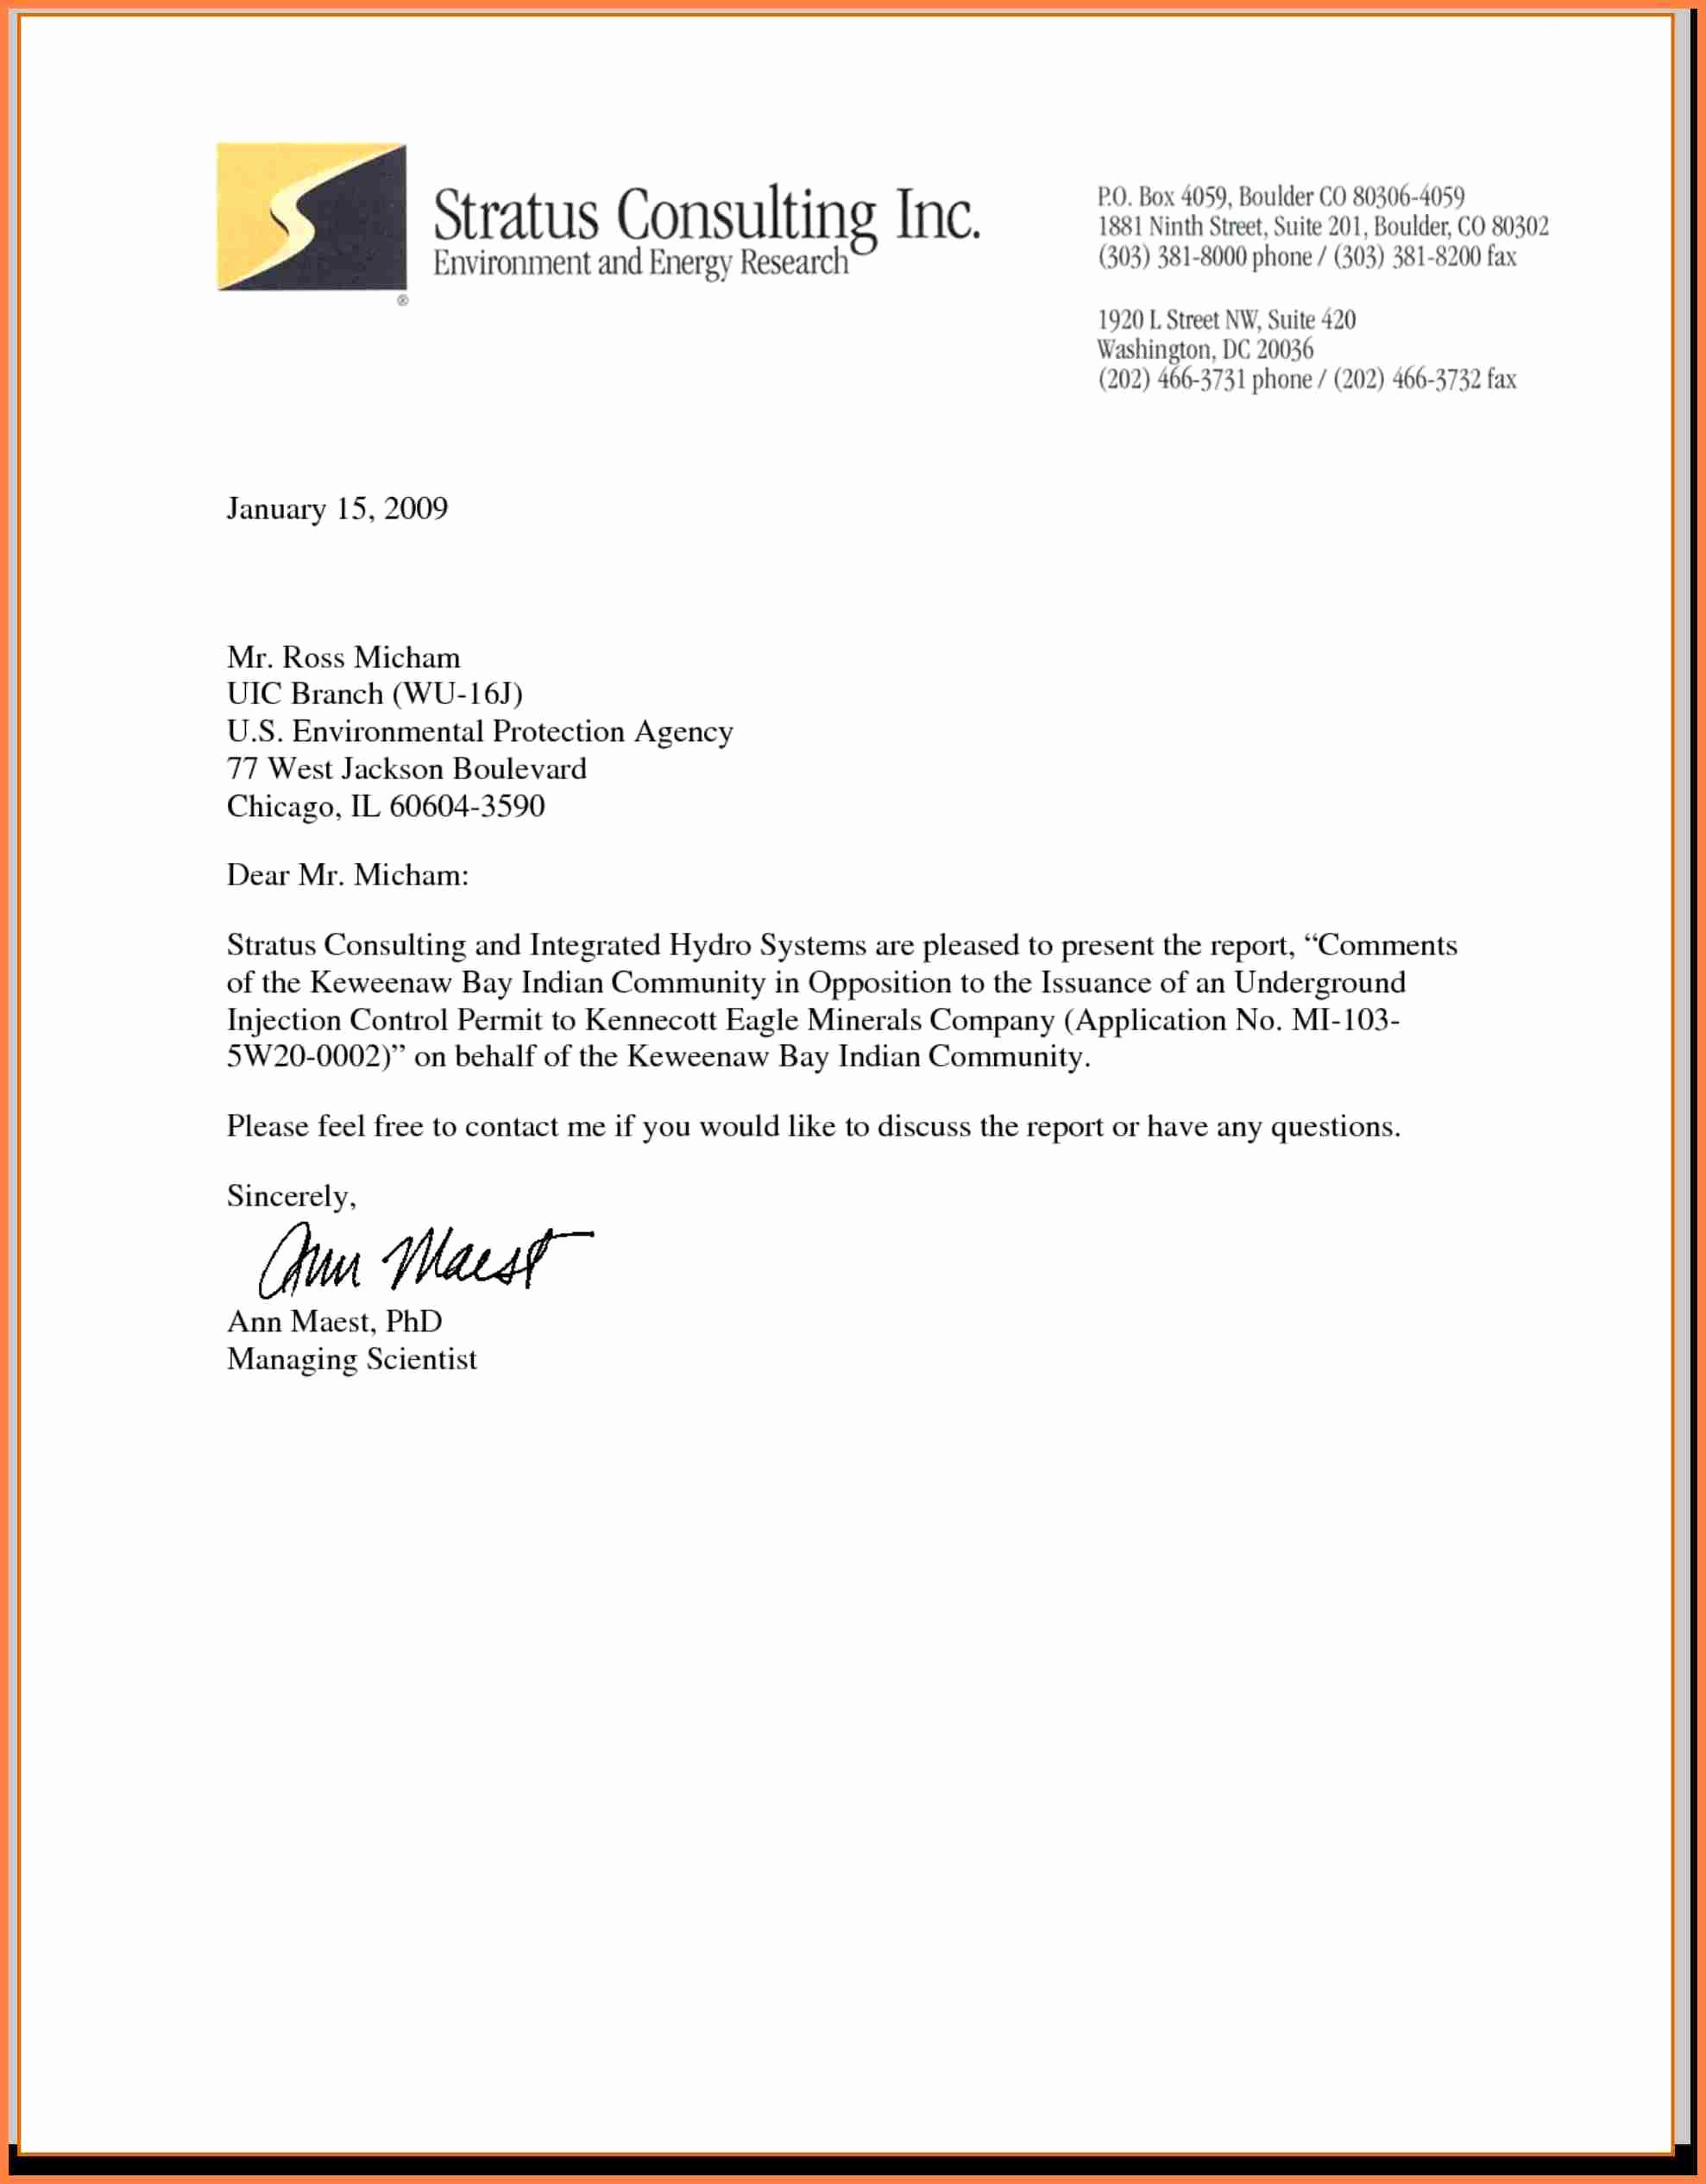 Microsoft Word Letter Template Beautiful 7 Letterhead Template Word 2010